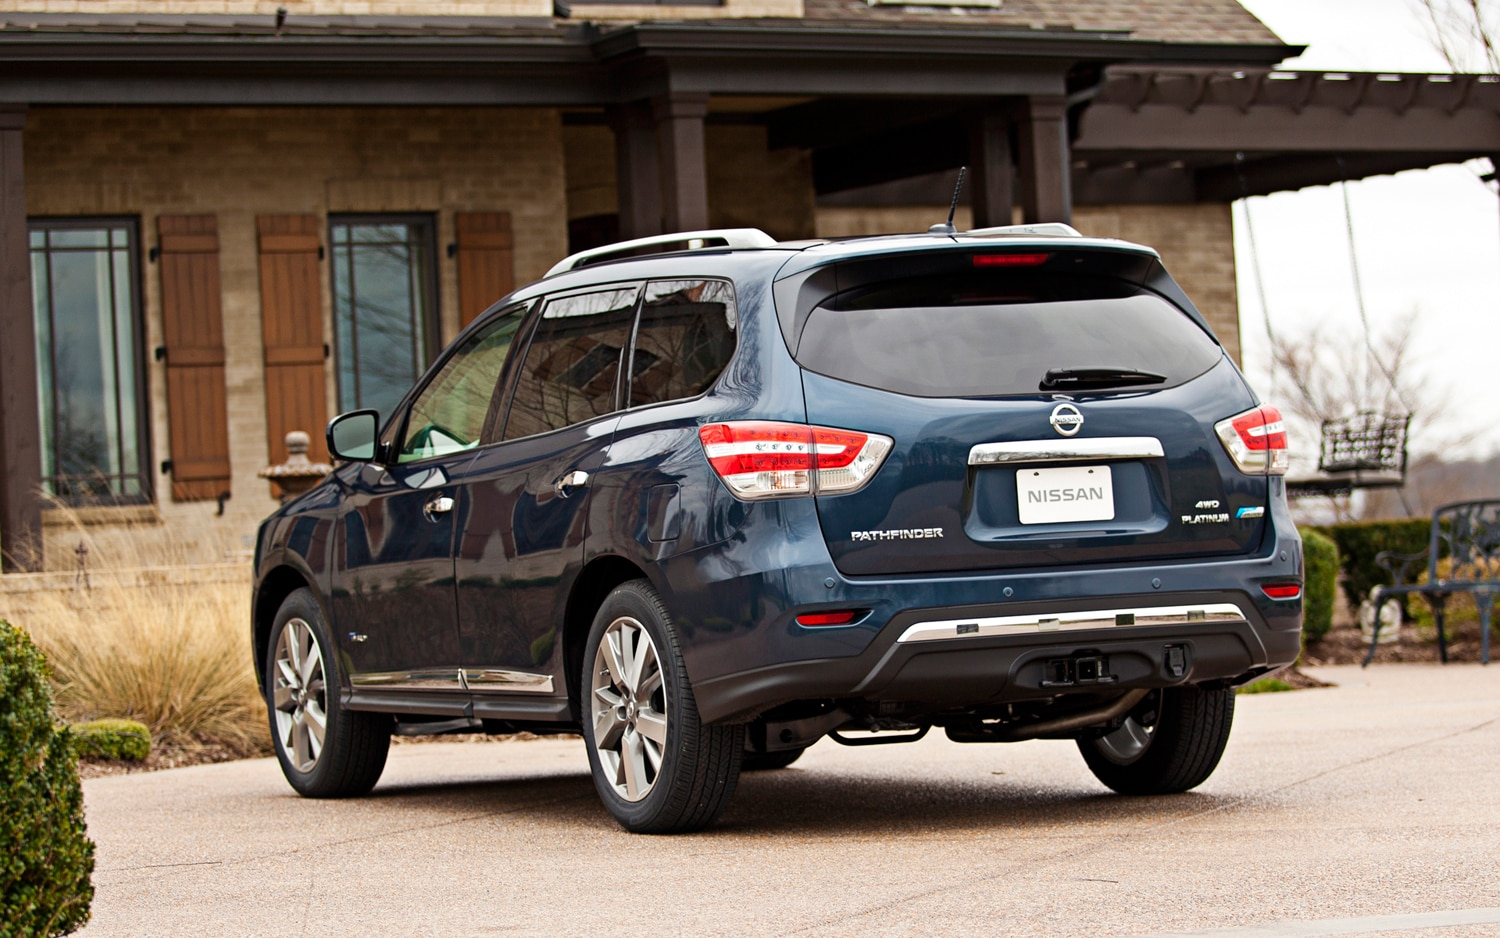 2014 Nissan Pathfinder Hybrid Review - Automobile Magazine